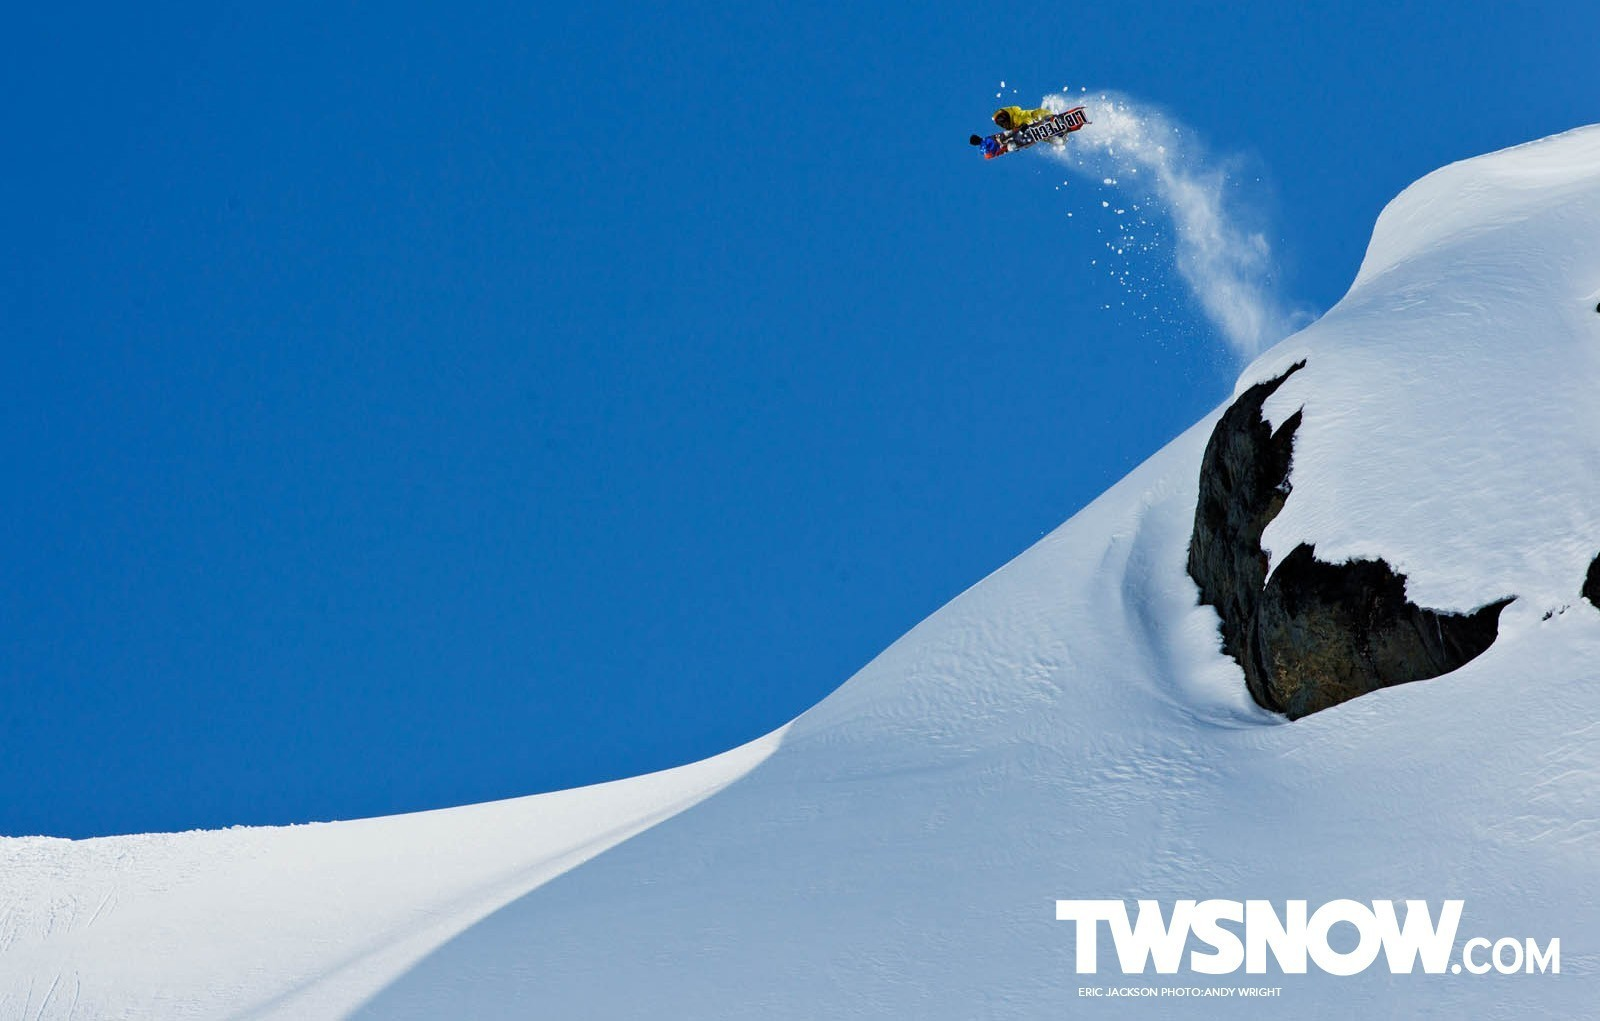 Mountains snow rider Sports HD Wallpaper